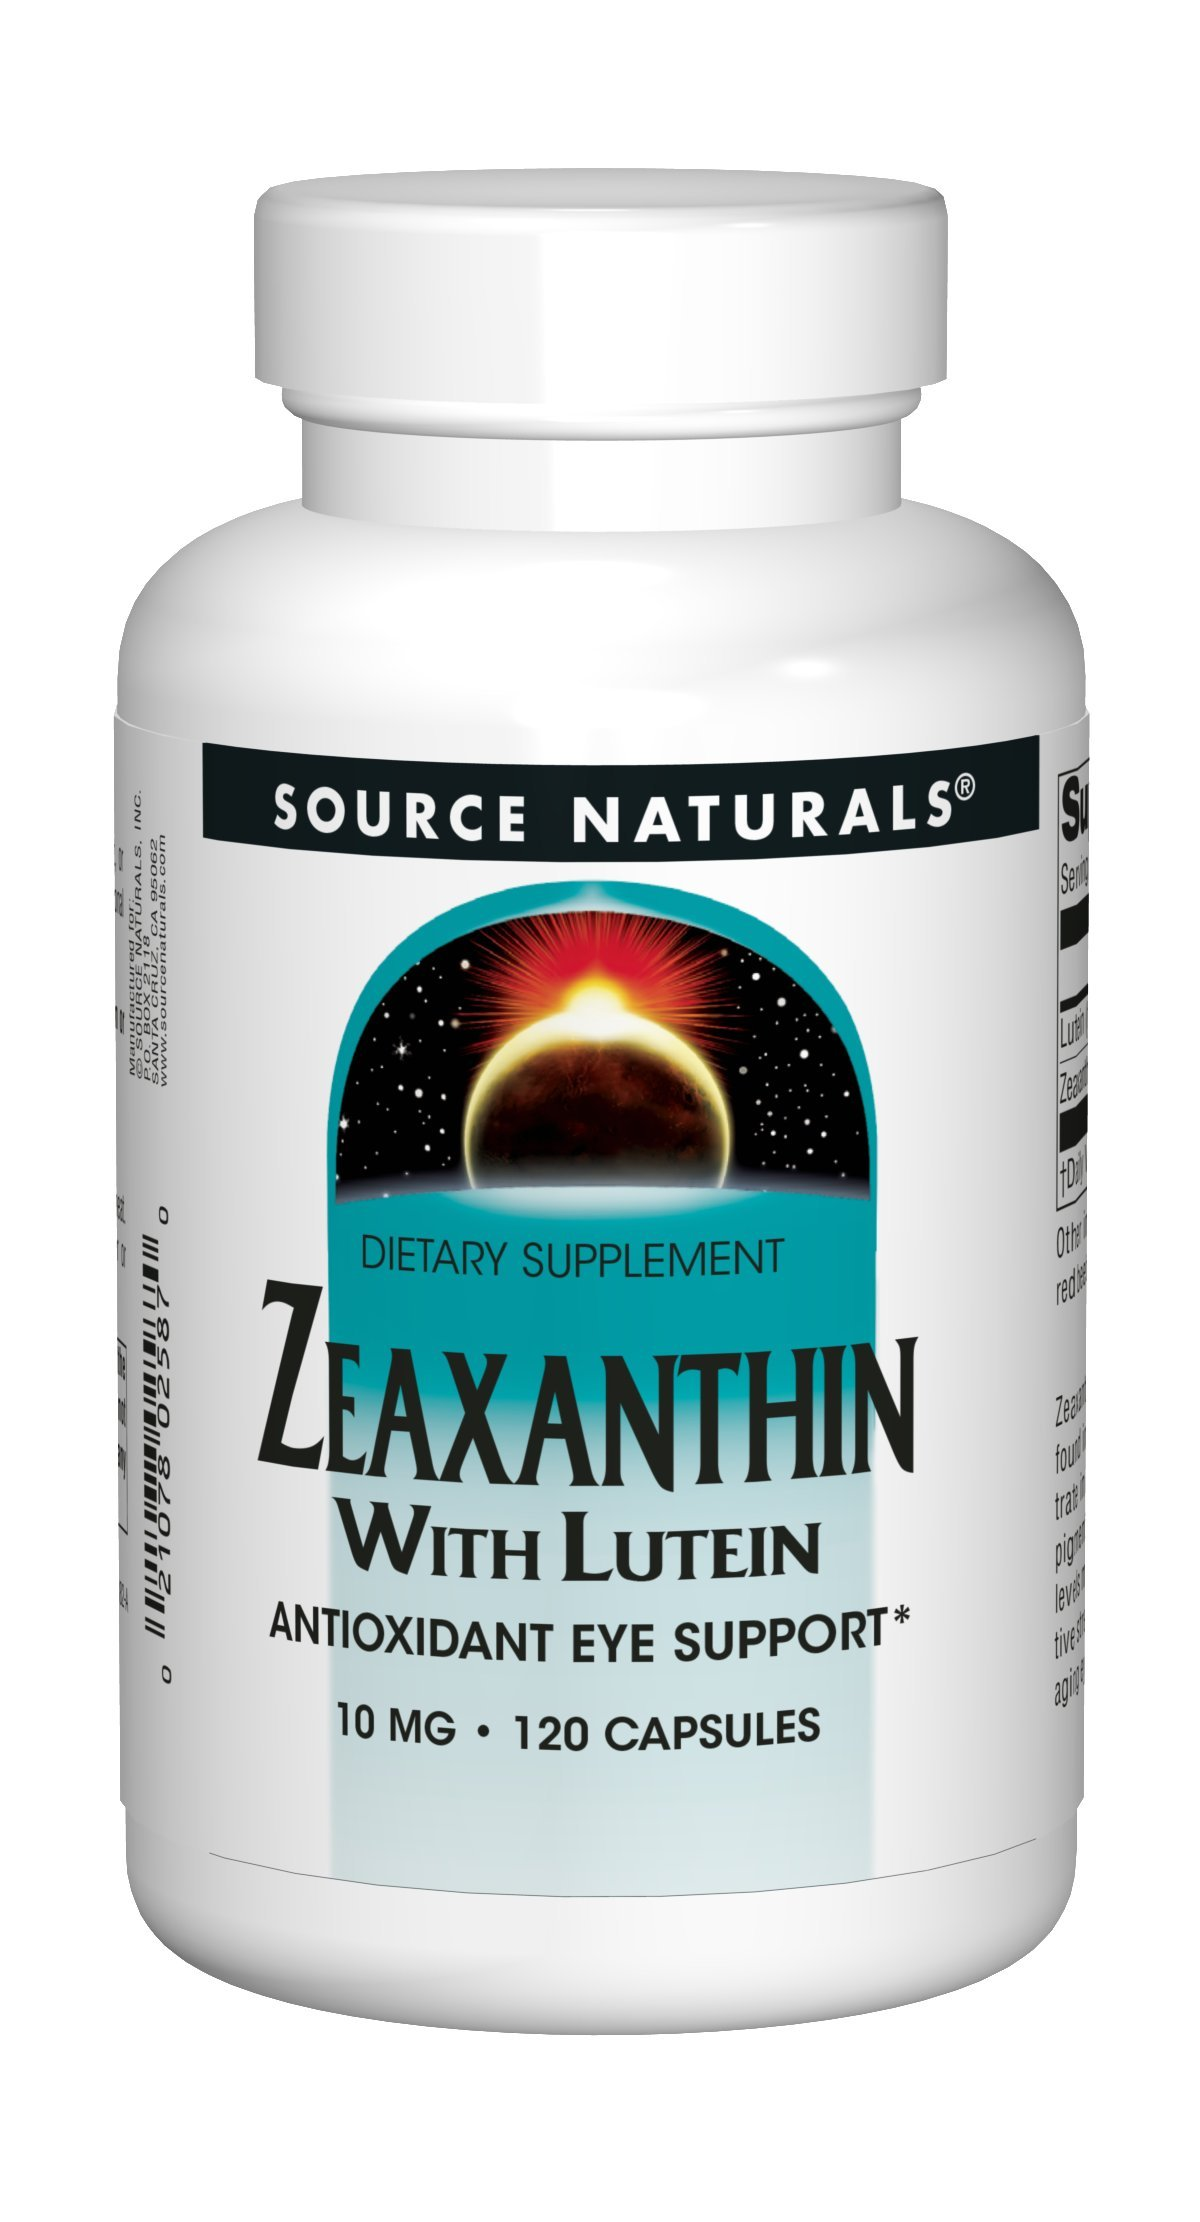 Source Naturals Zeaxanthin With Lutein 10 mg Powerful Antioxidants - 120 Capsules